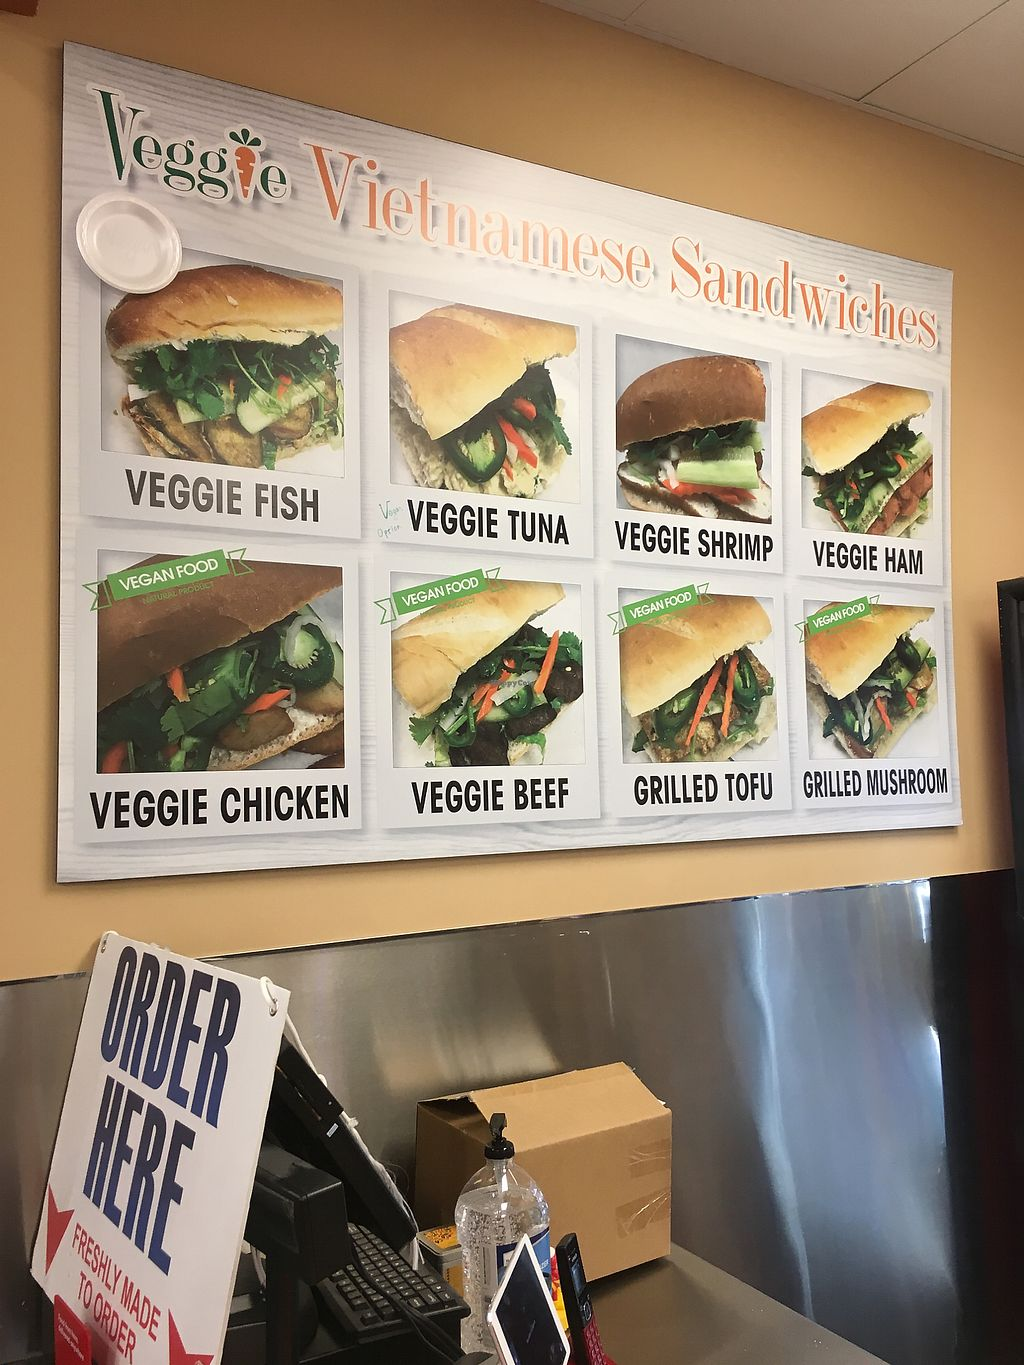 "Photo of VeggiEAT Xpress  by <a href=""/members/profile/Melynavarro"">Melynavarro</a> <br/>Sandwich menu  <br/> December 19, 2017  - <a href='/contact/abuse/image/86667/337342'>Report</a>"